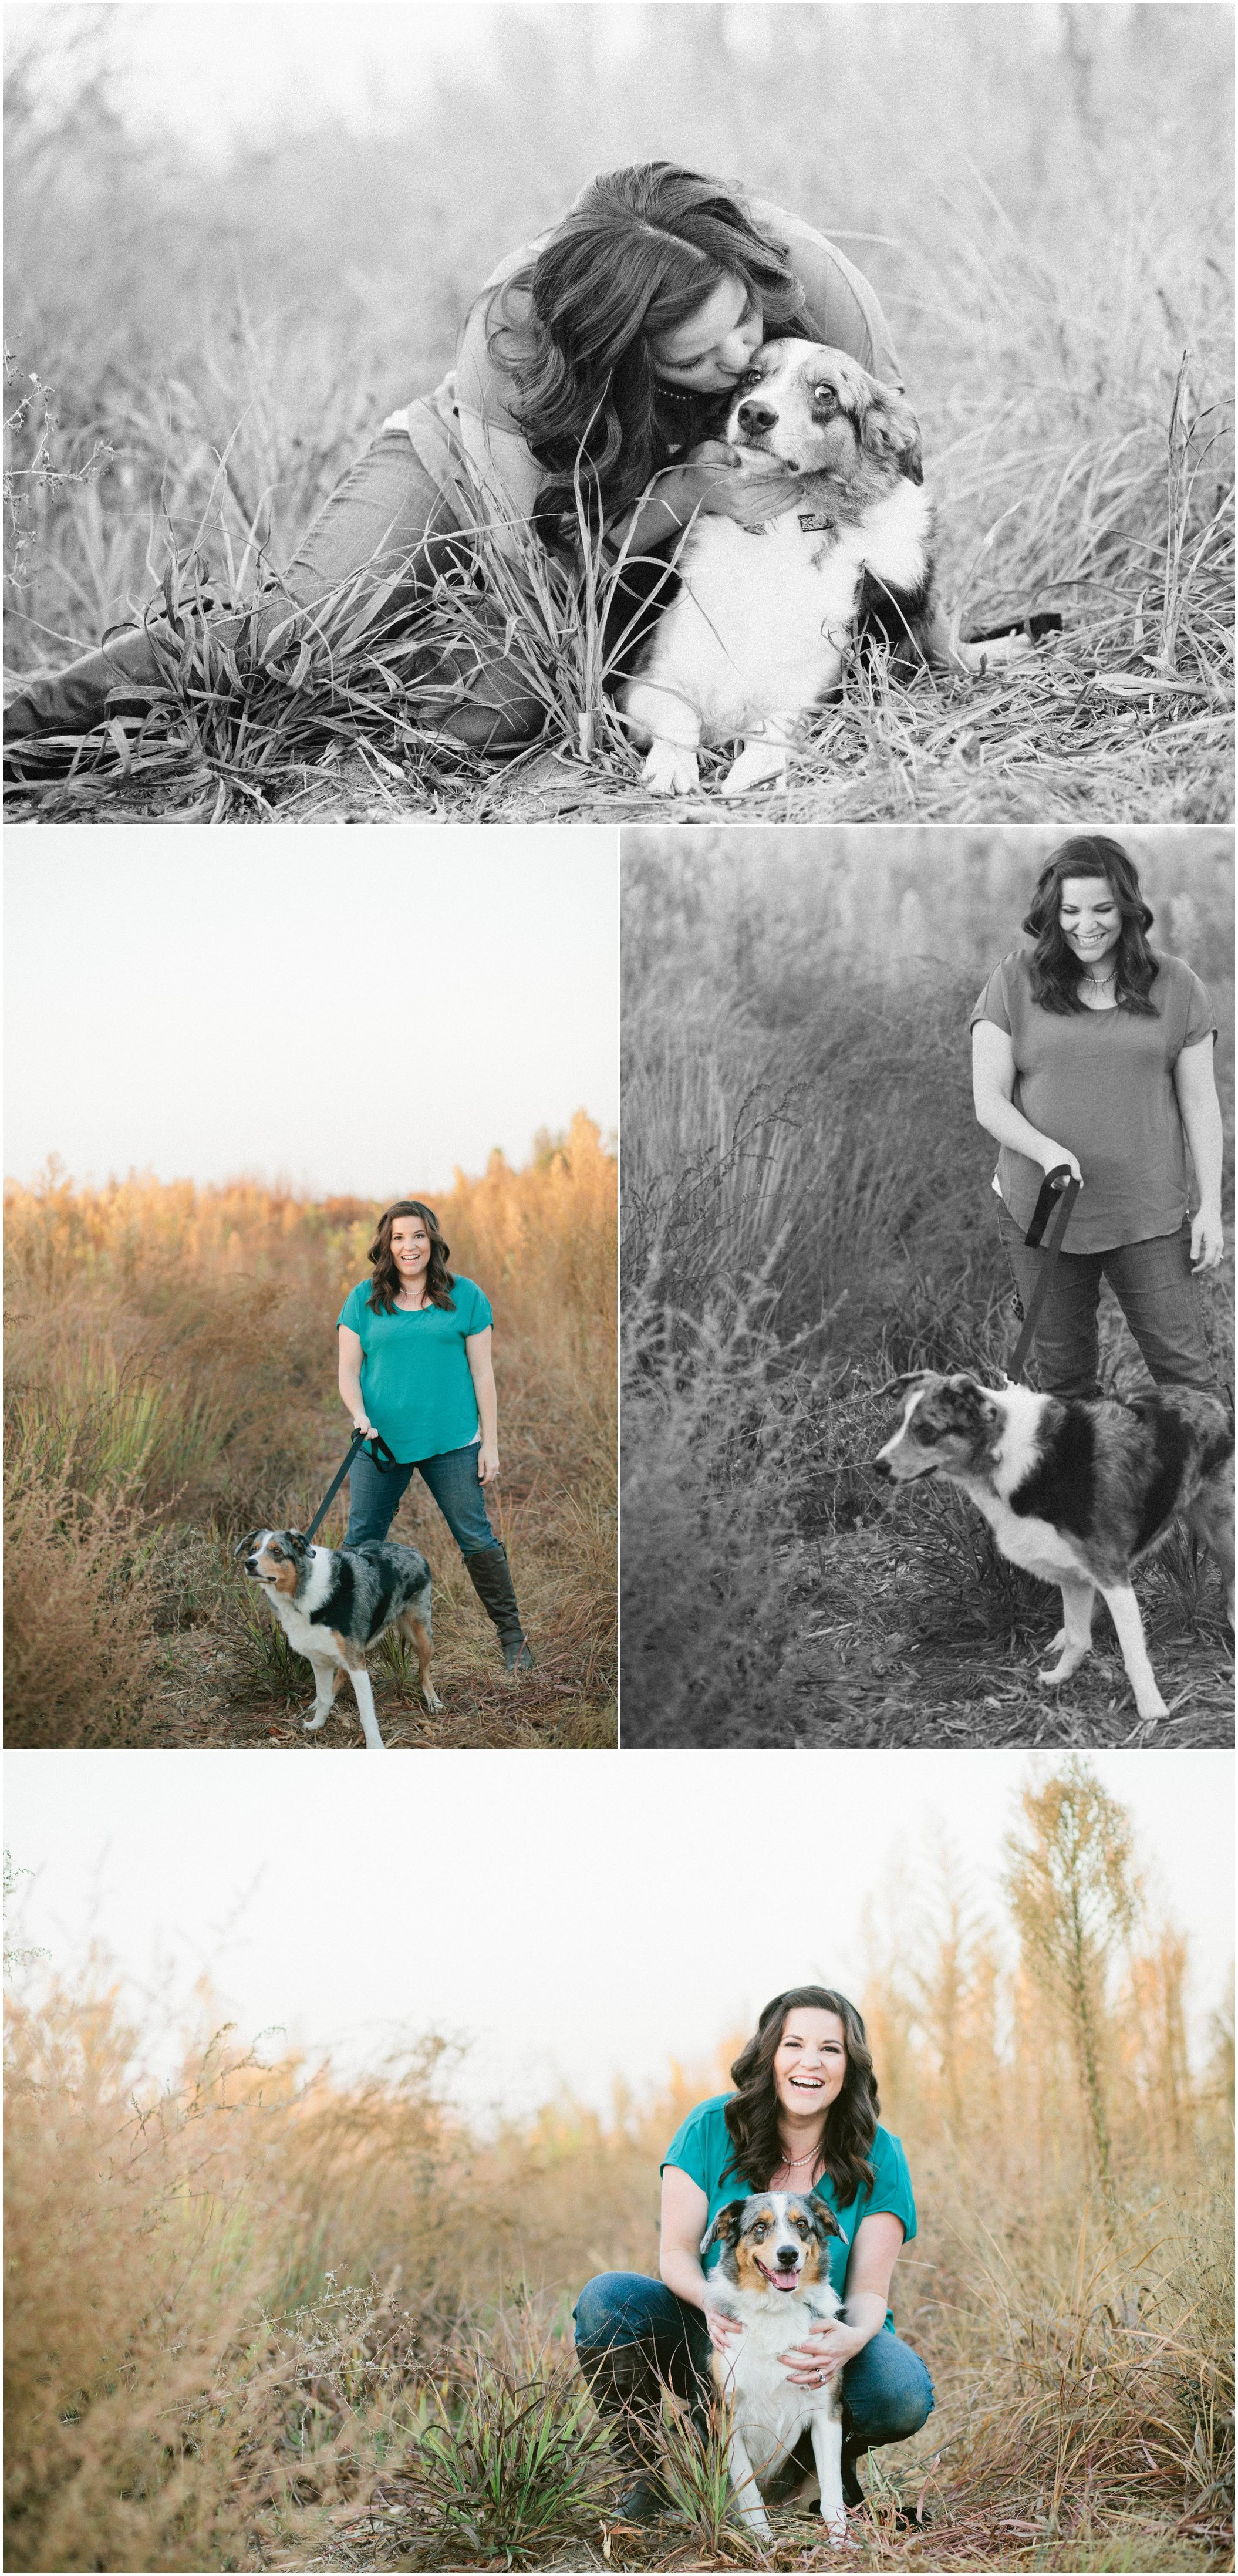 2d87fa7ec86d erica houck photography senior portrait shoot photoshoot session puppy dog  owner with dog